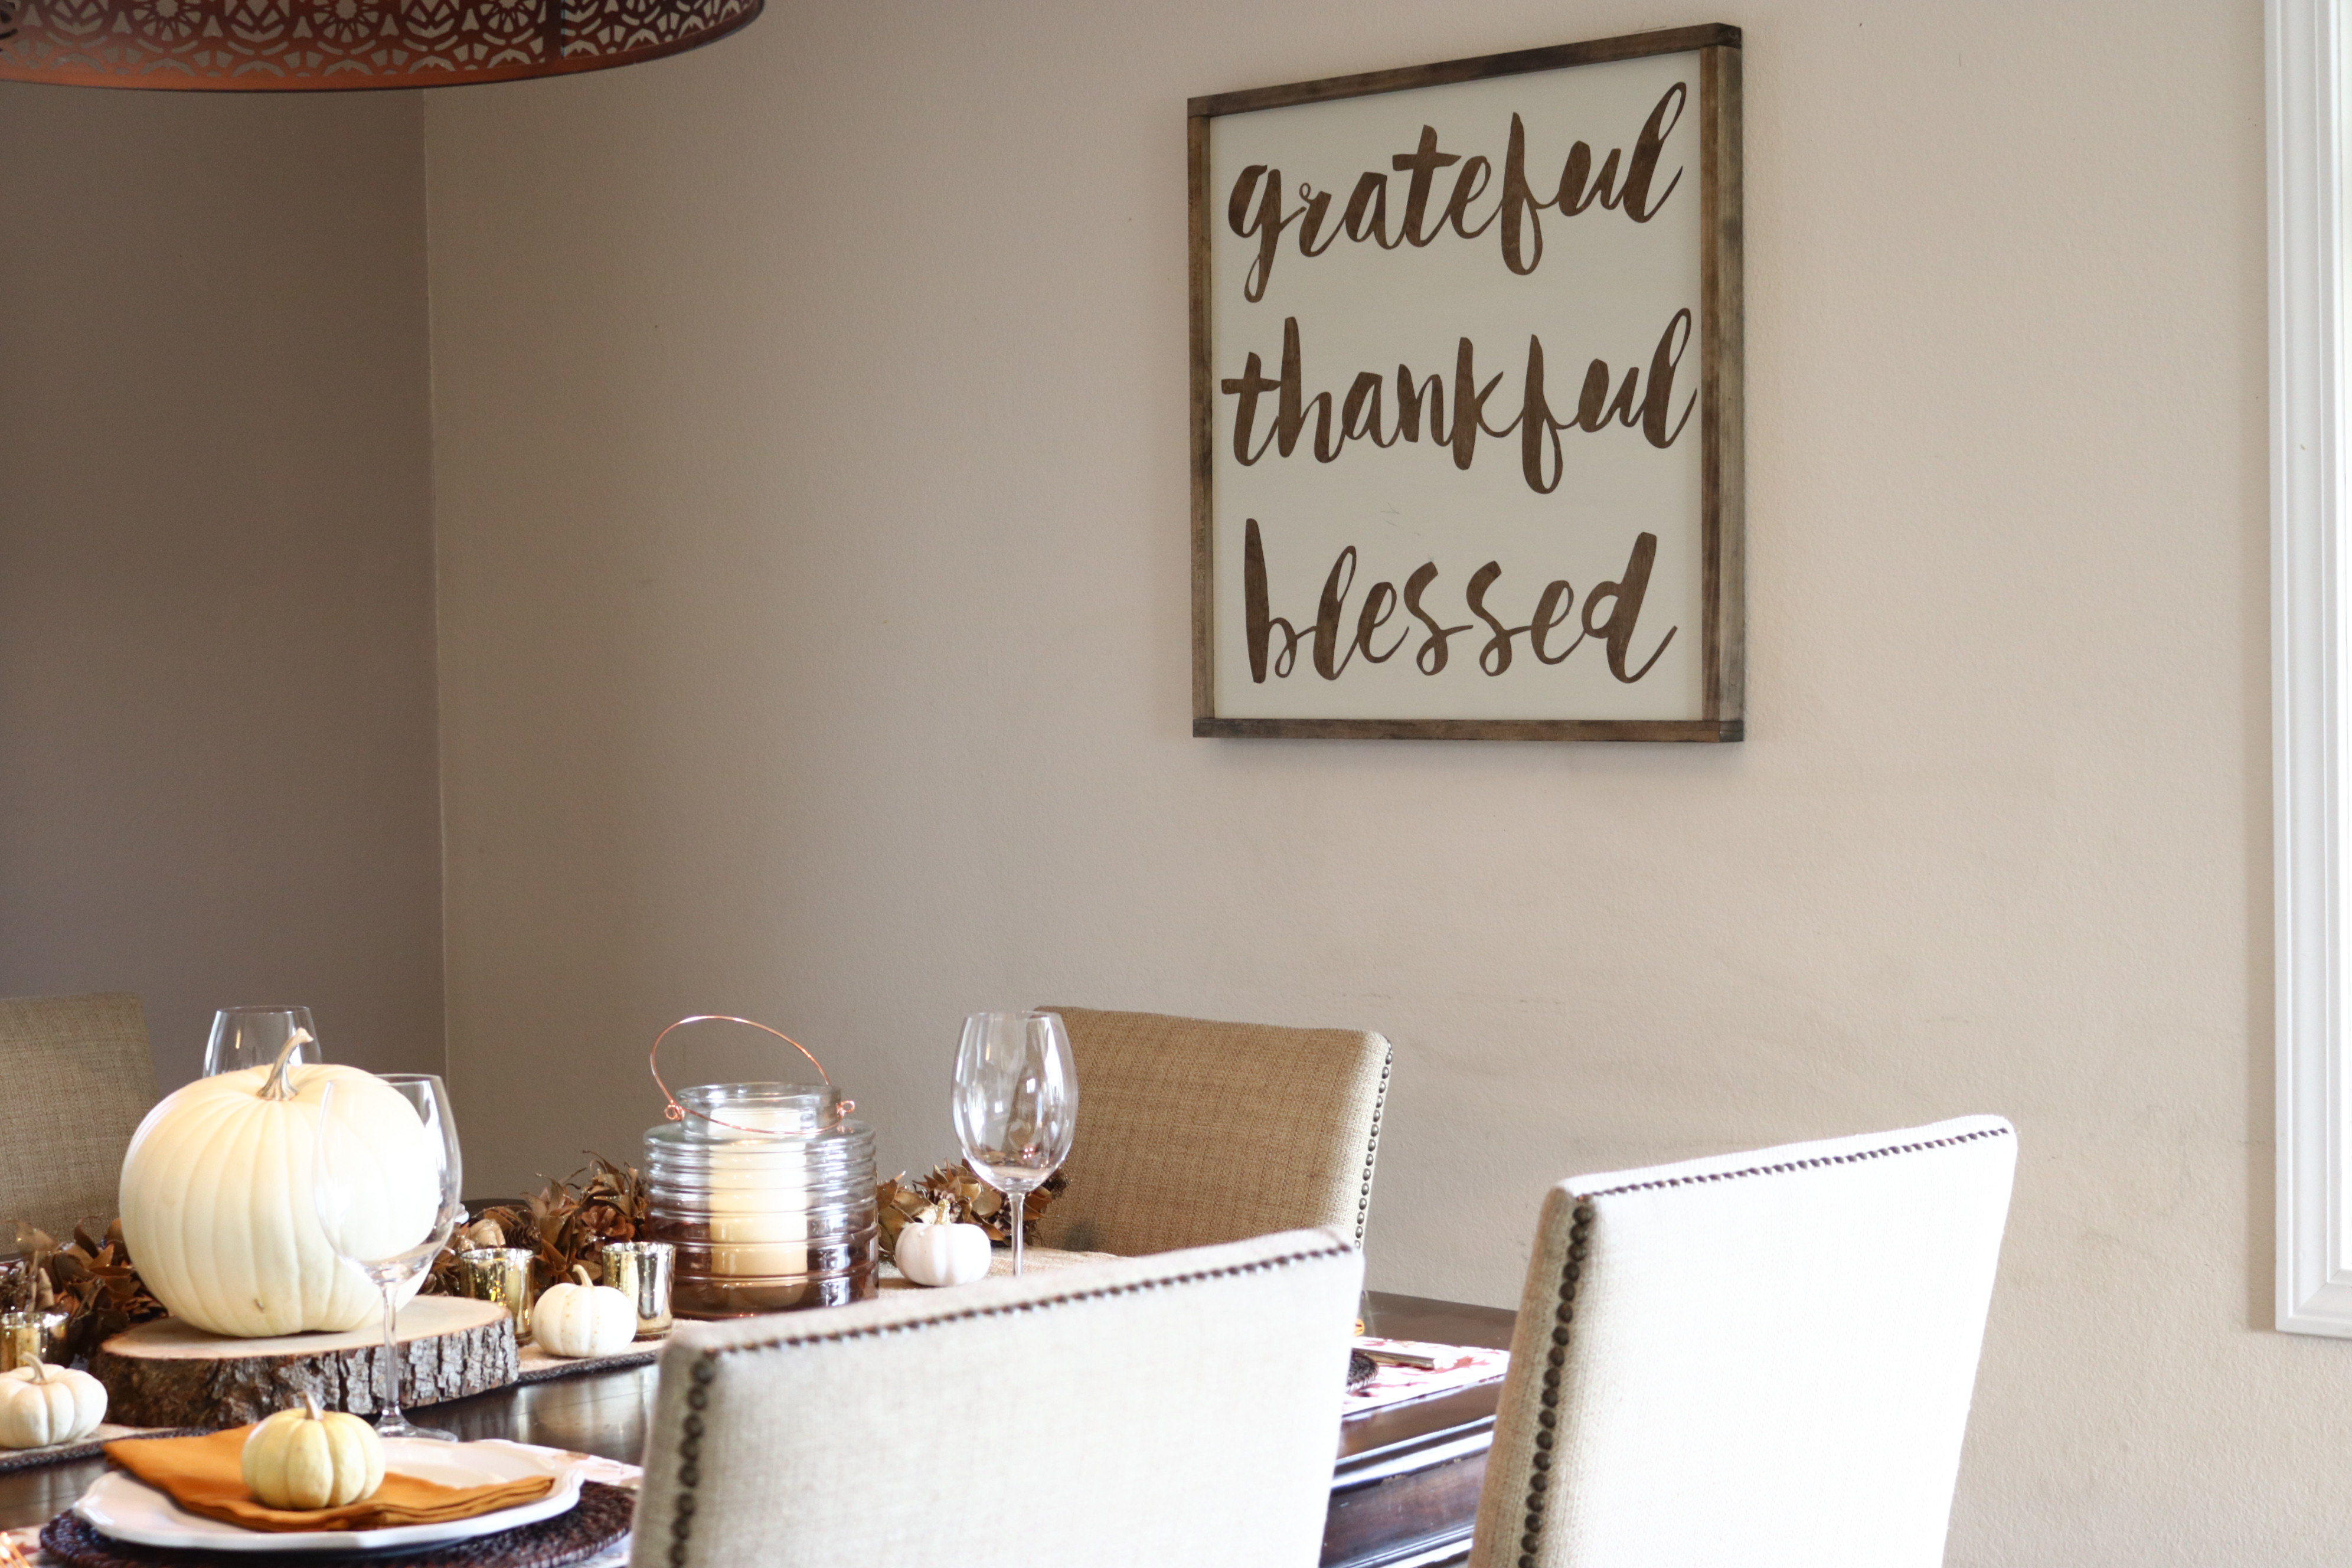 Fall Tablescpe Ideas. Thanksgiving or Friendsgiving Tablescape.